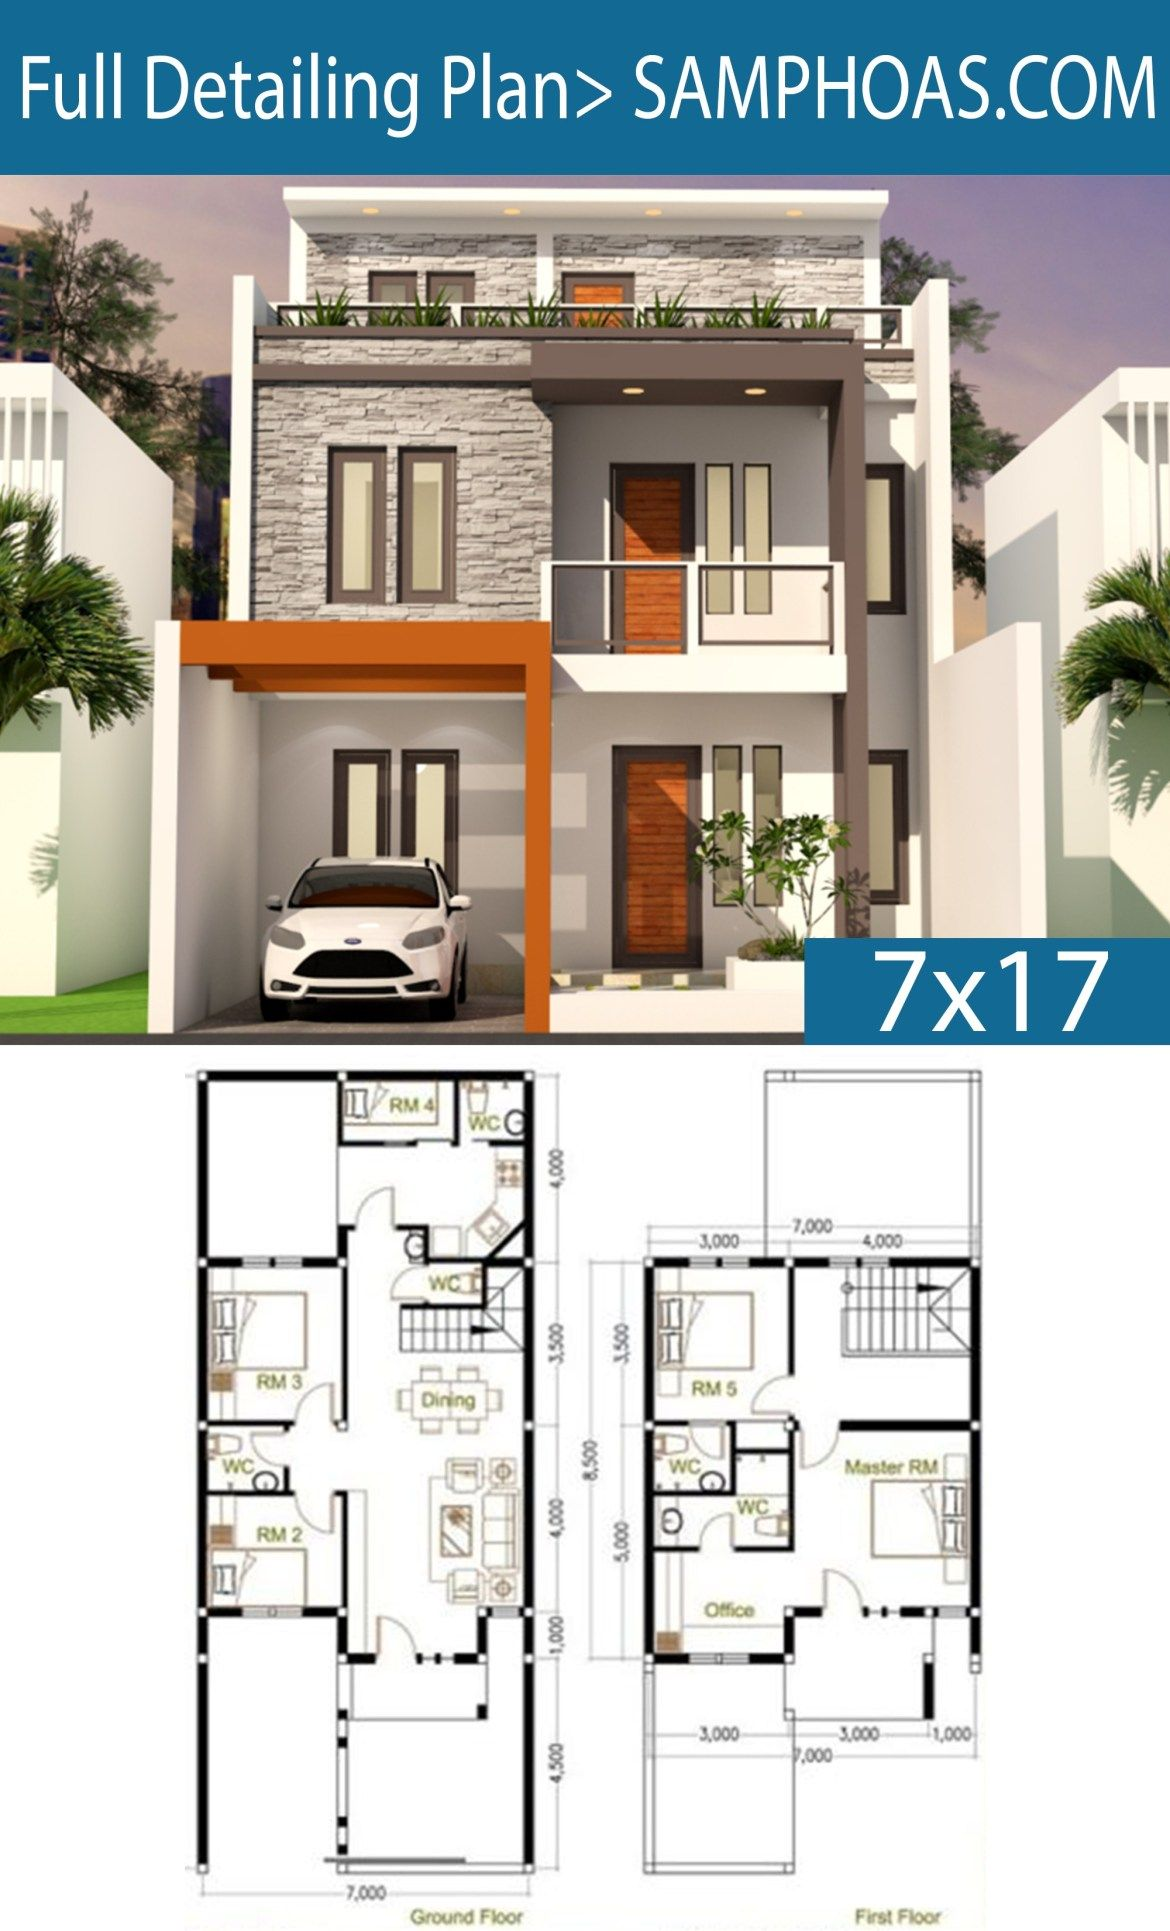 5 Bedrooms Home Design Plan 7x17 Diseno Casas Modernas Diseno